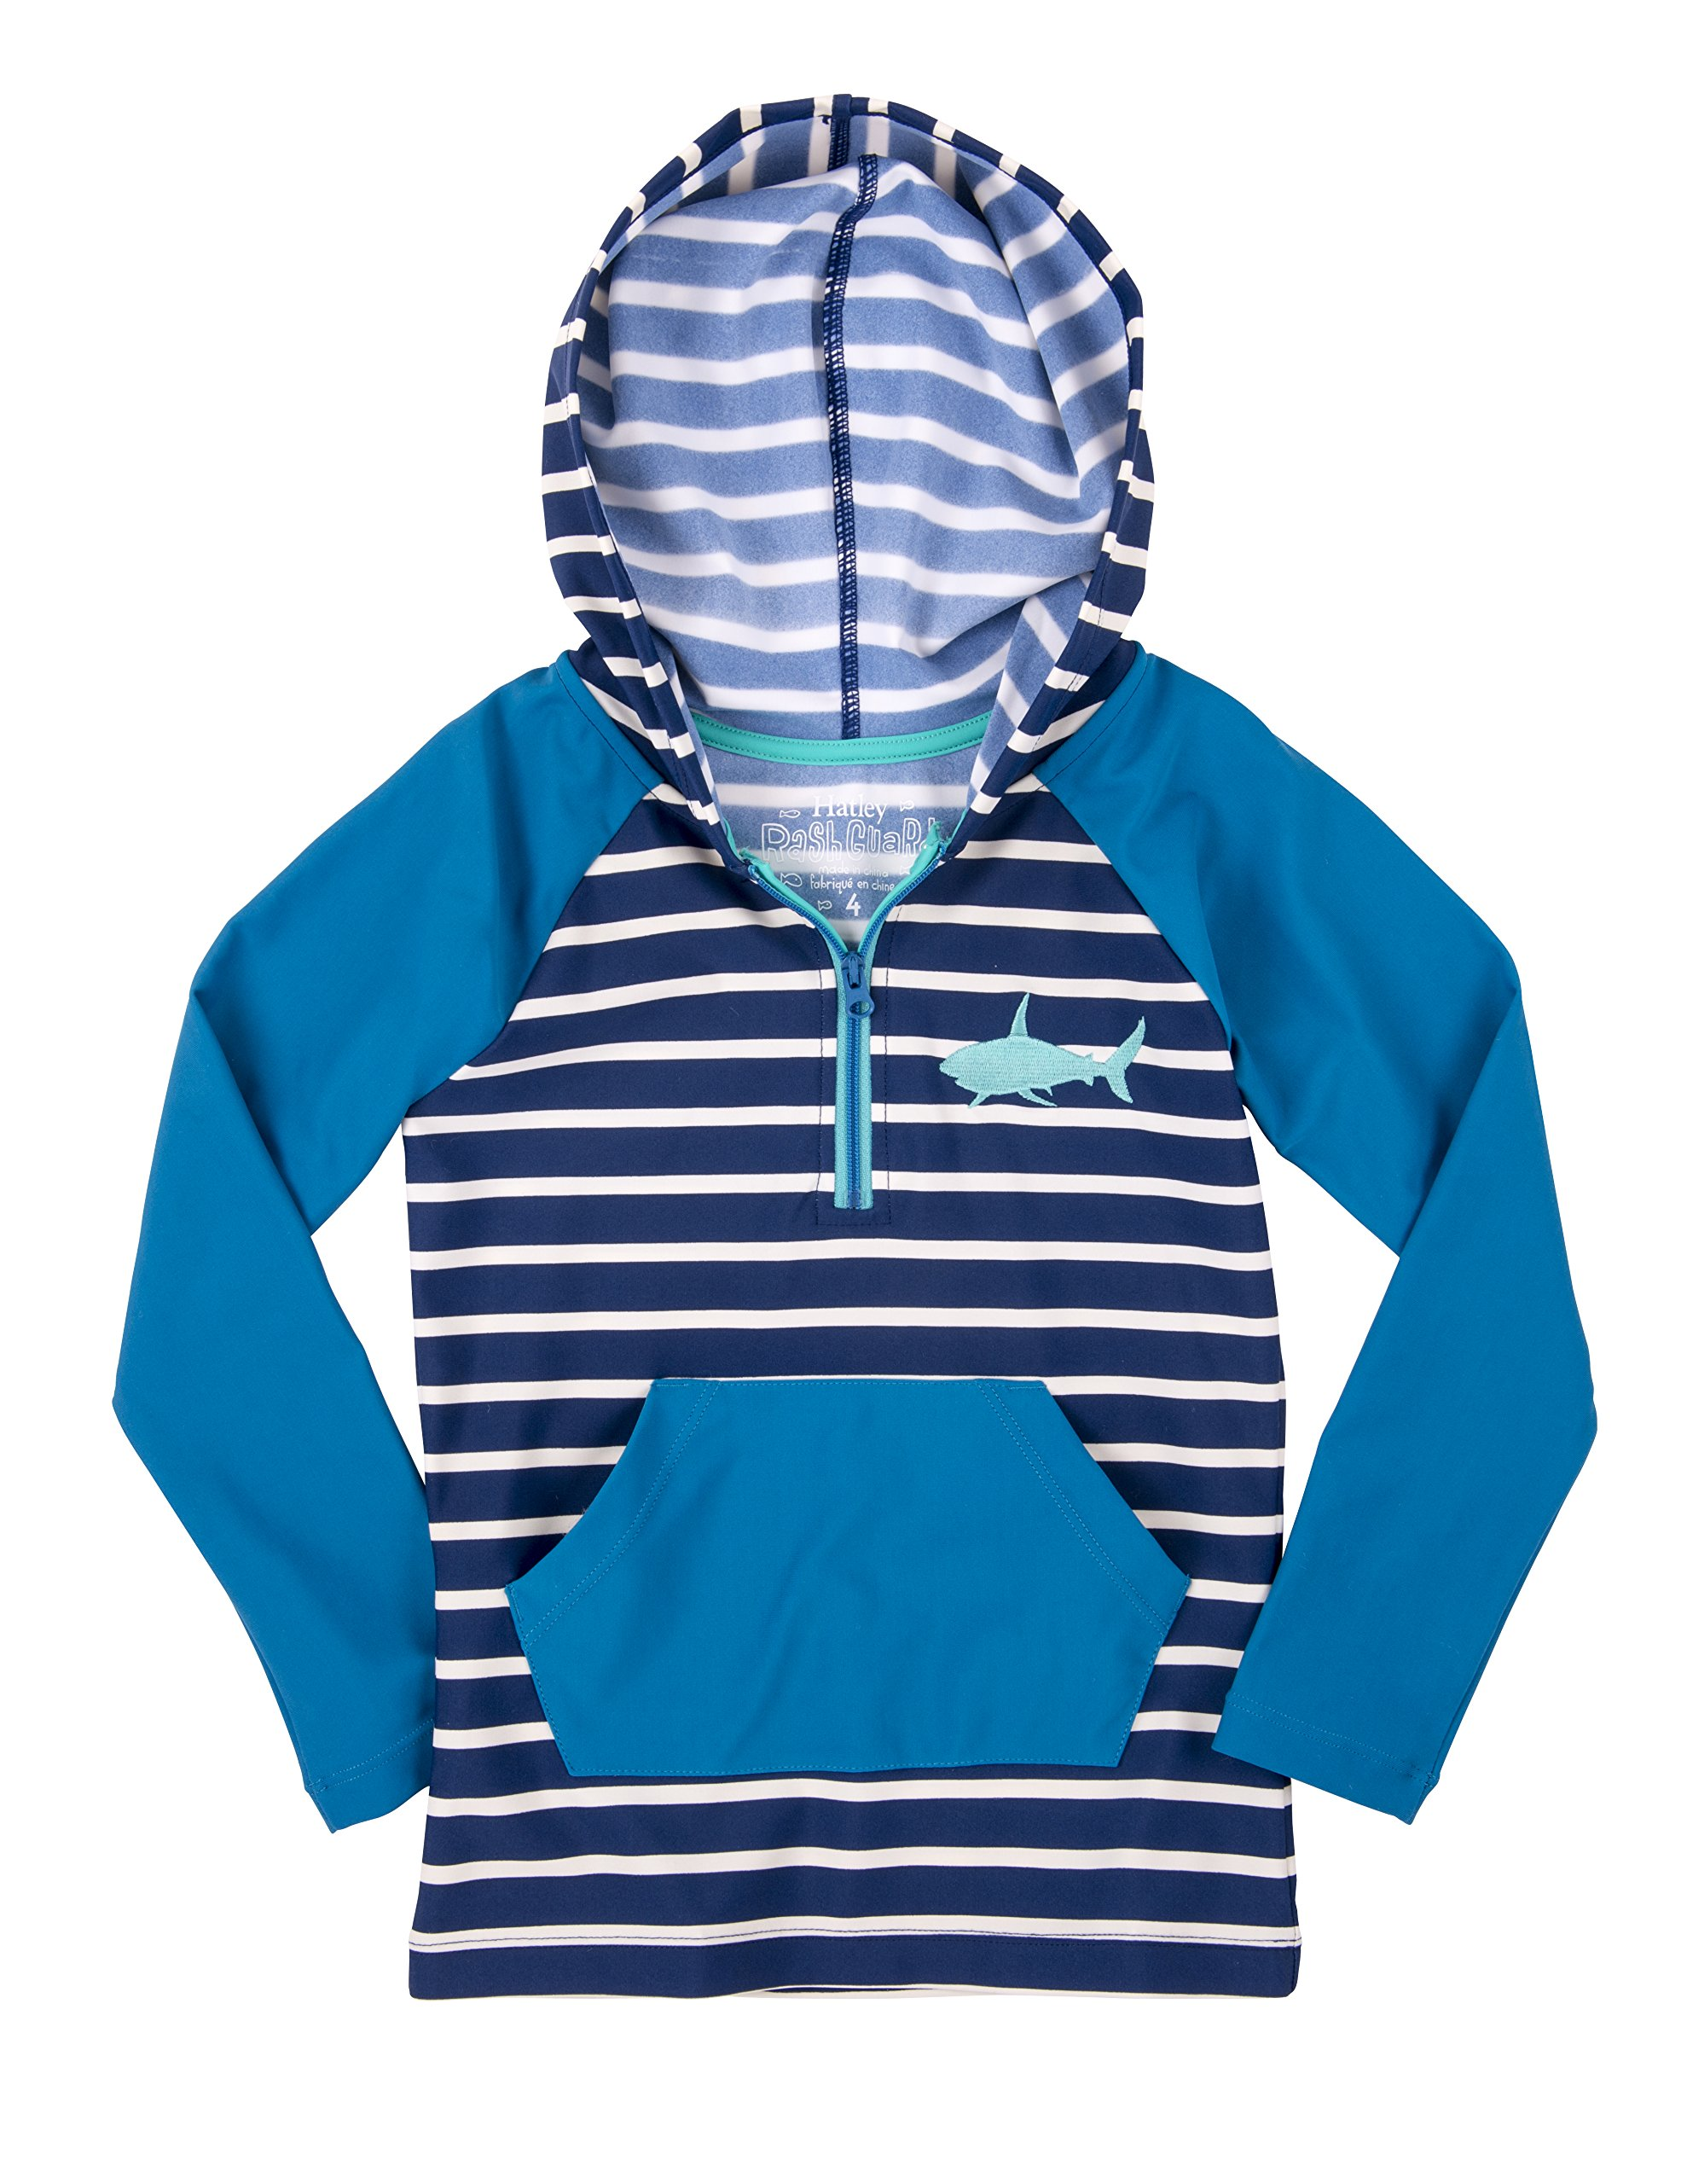 Hatley Little Boys' Hooded Rash Guard, Toothy Shark, 7 by Hatley